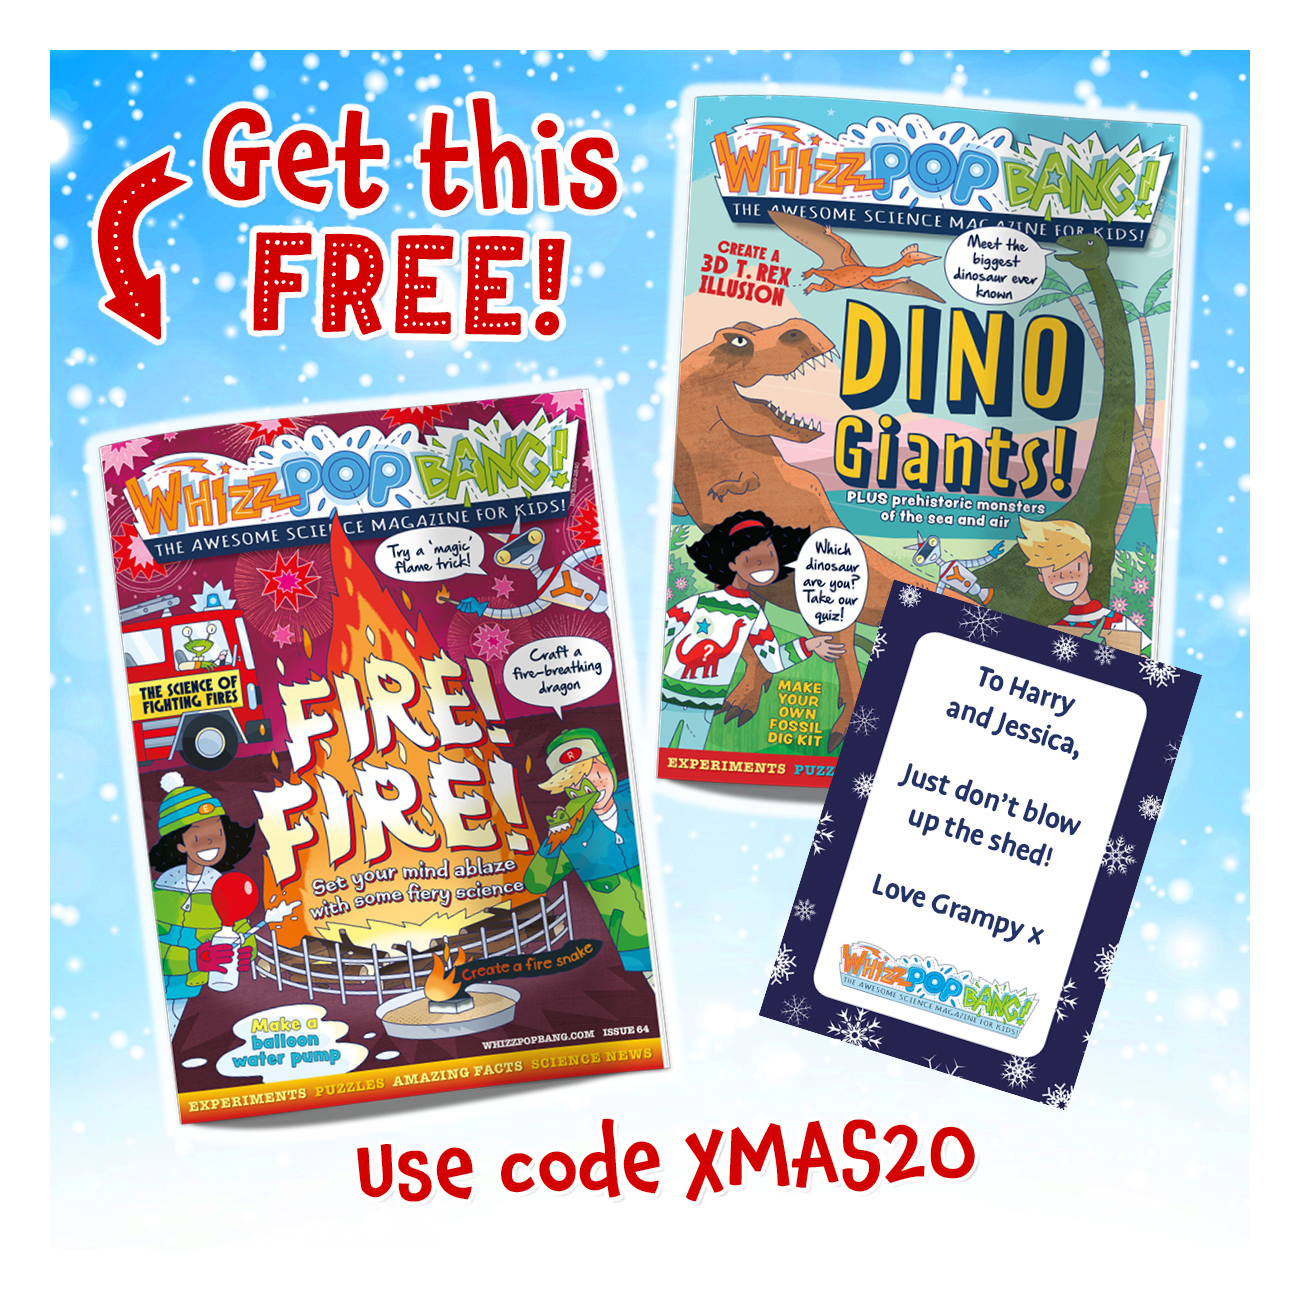 Free science magazine and gift card